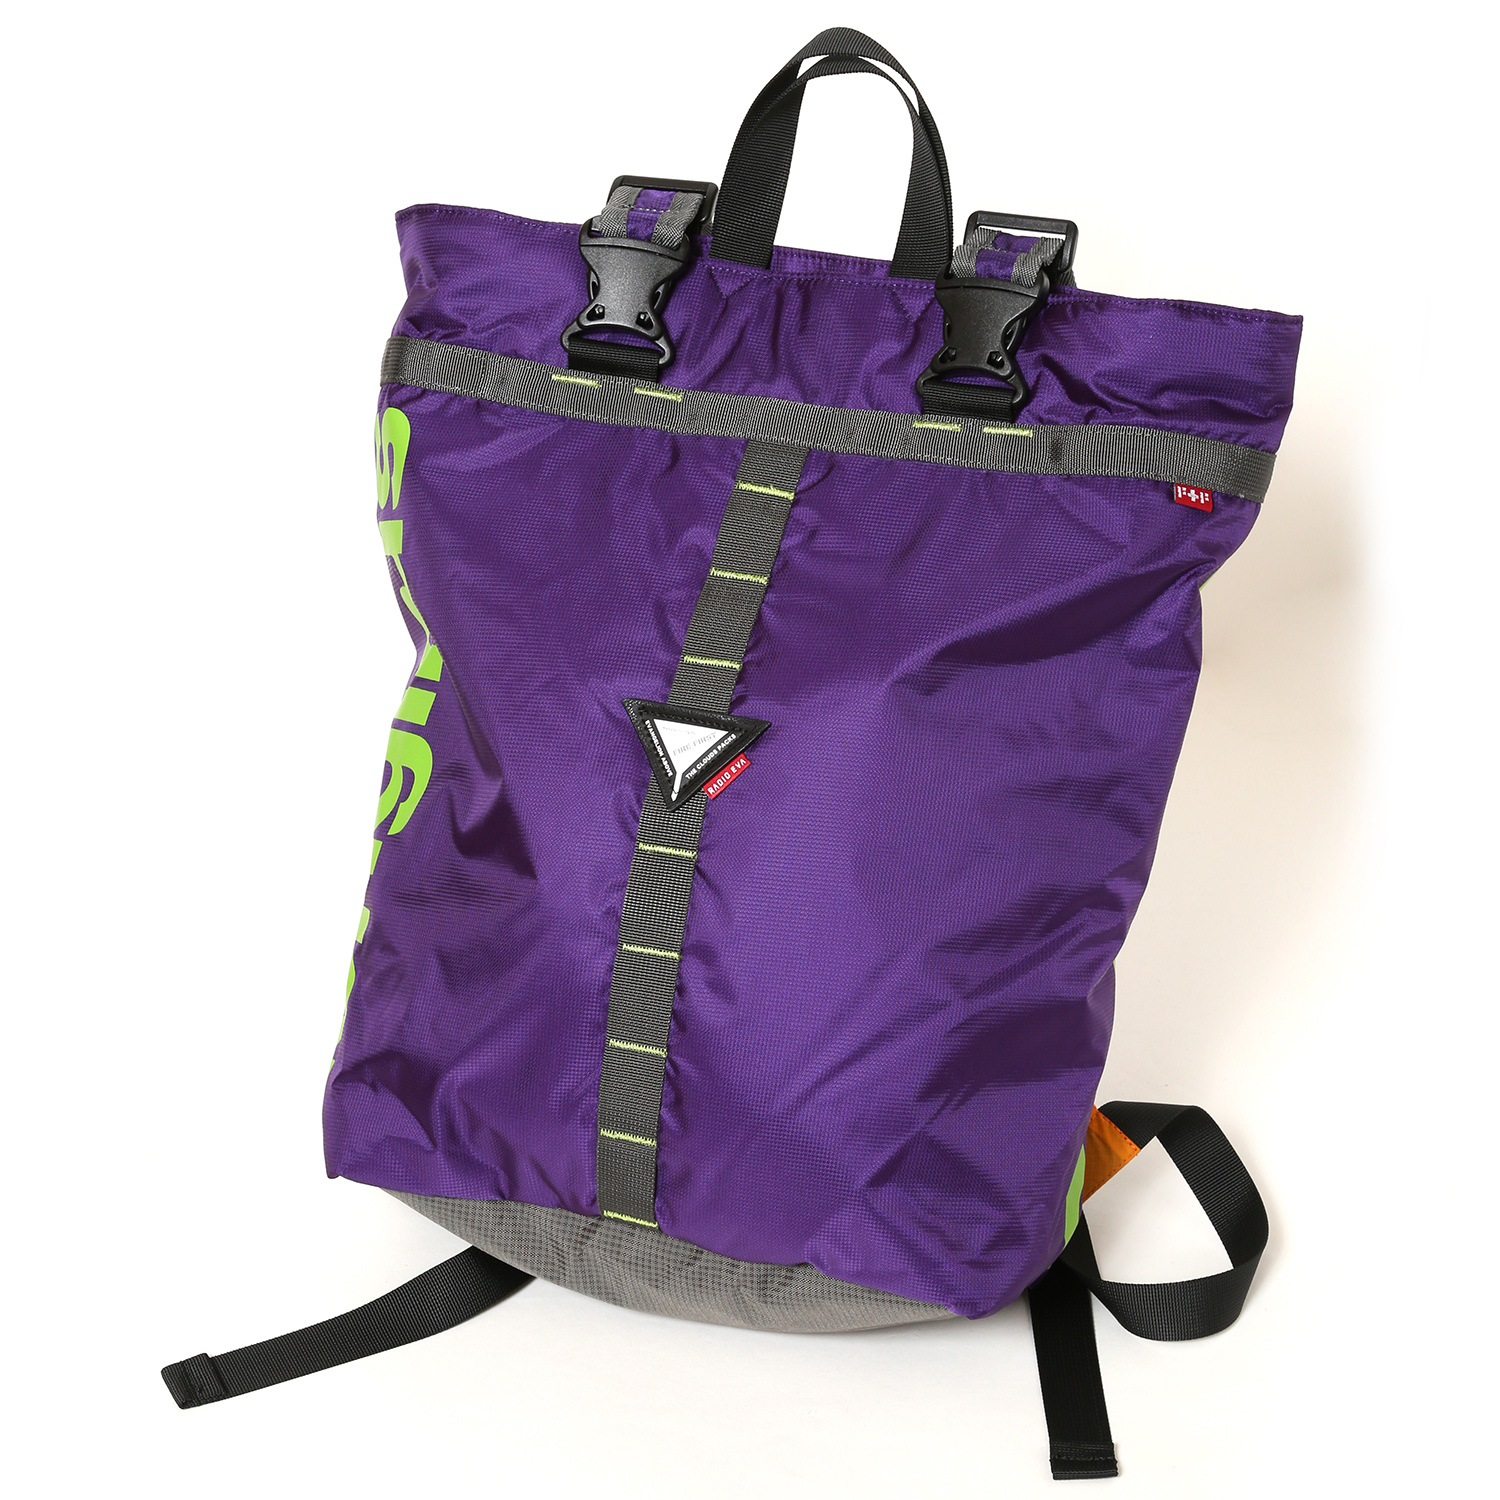 EVANGELION ABOVE AIR RUCK SACK by FIRE FIRST (EVA-13 MDOEL)